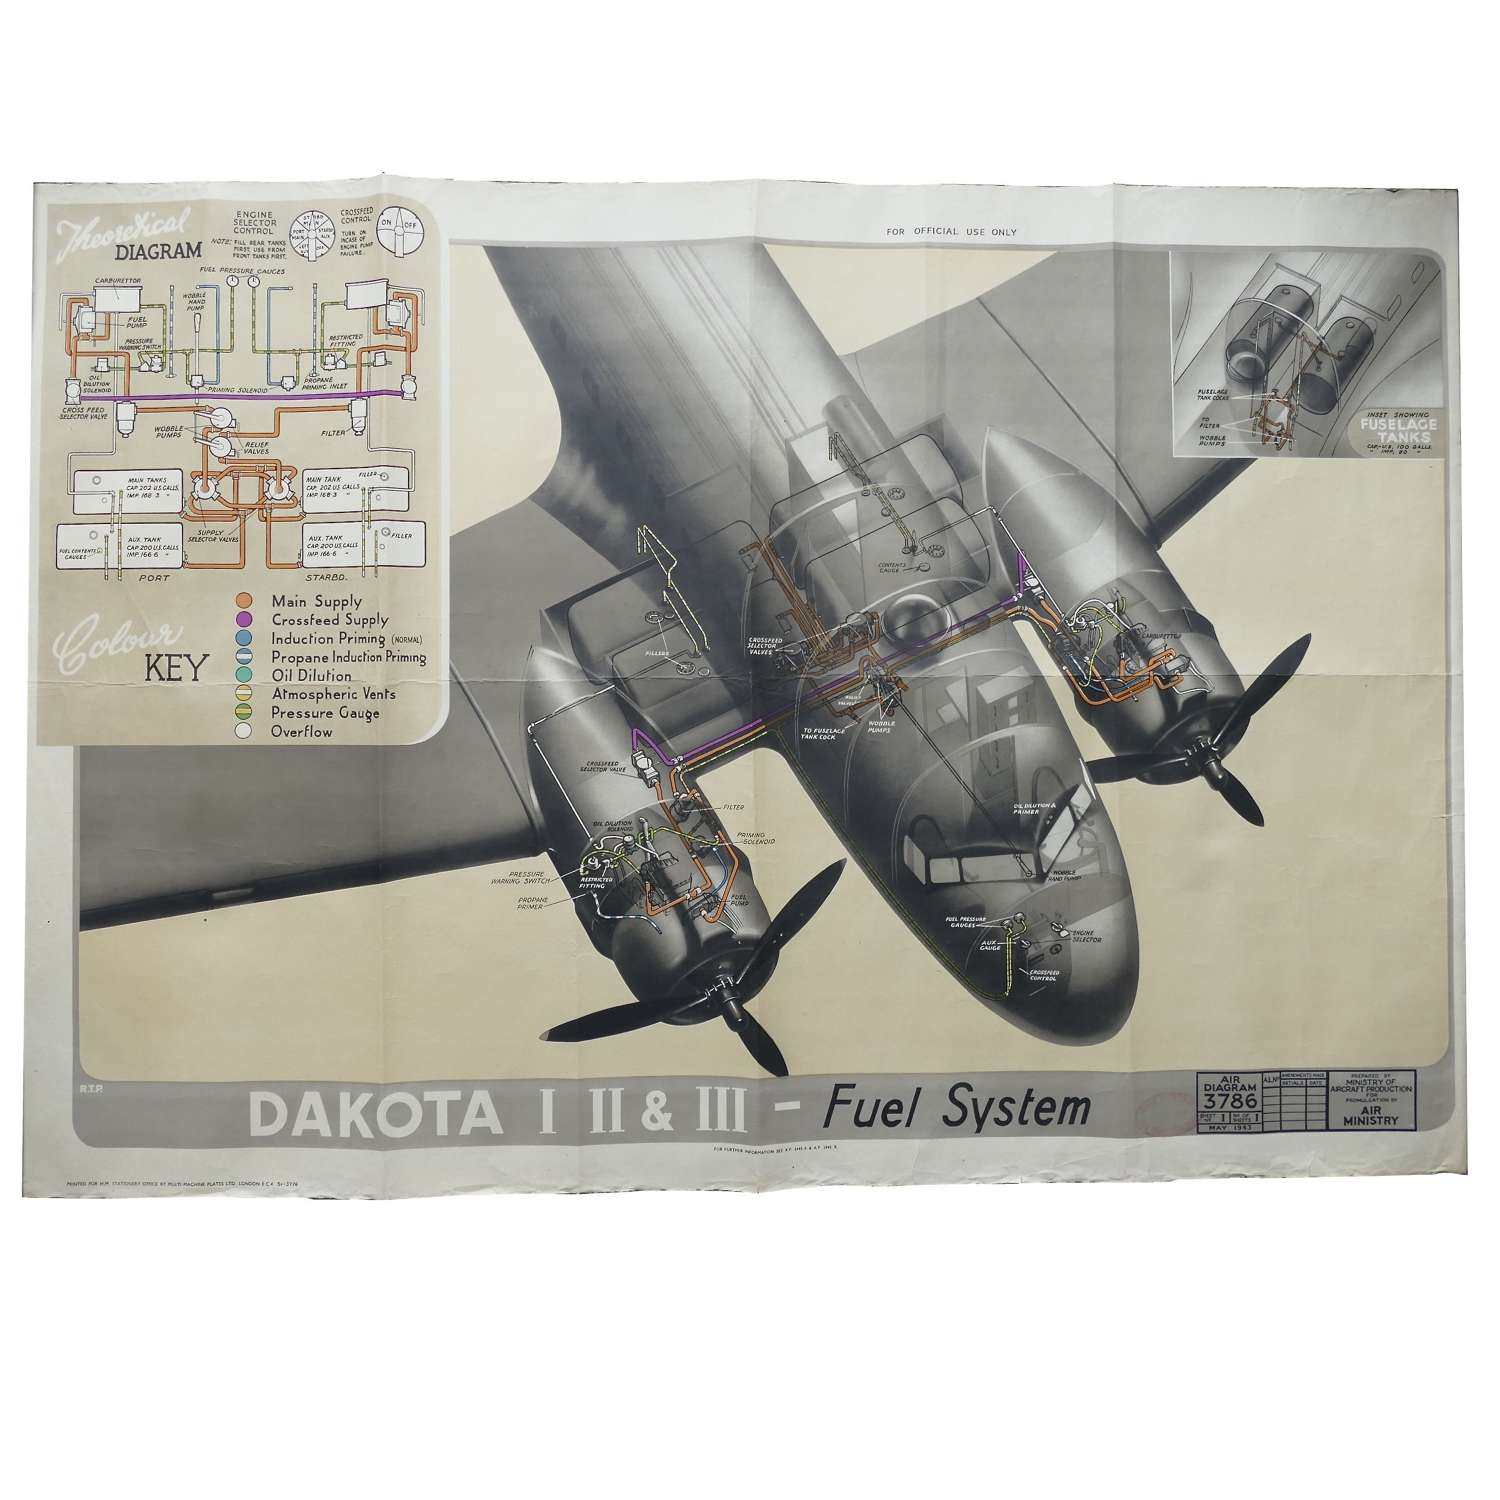 Air Diagram - Dakota Fuel Systems, 1943